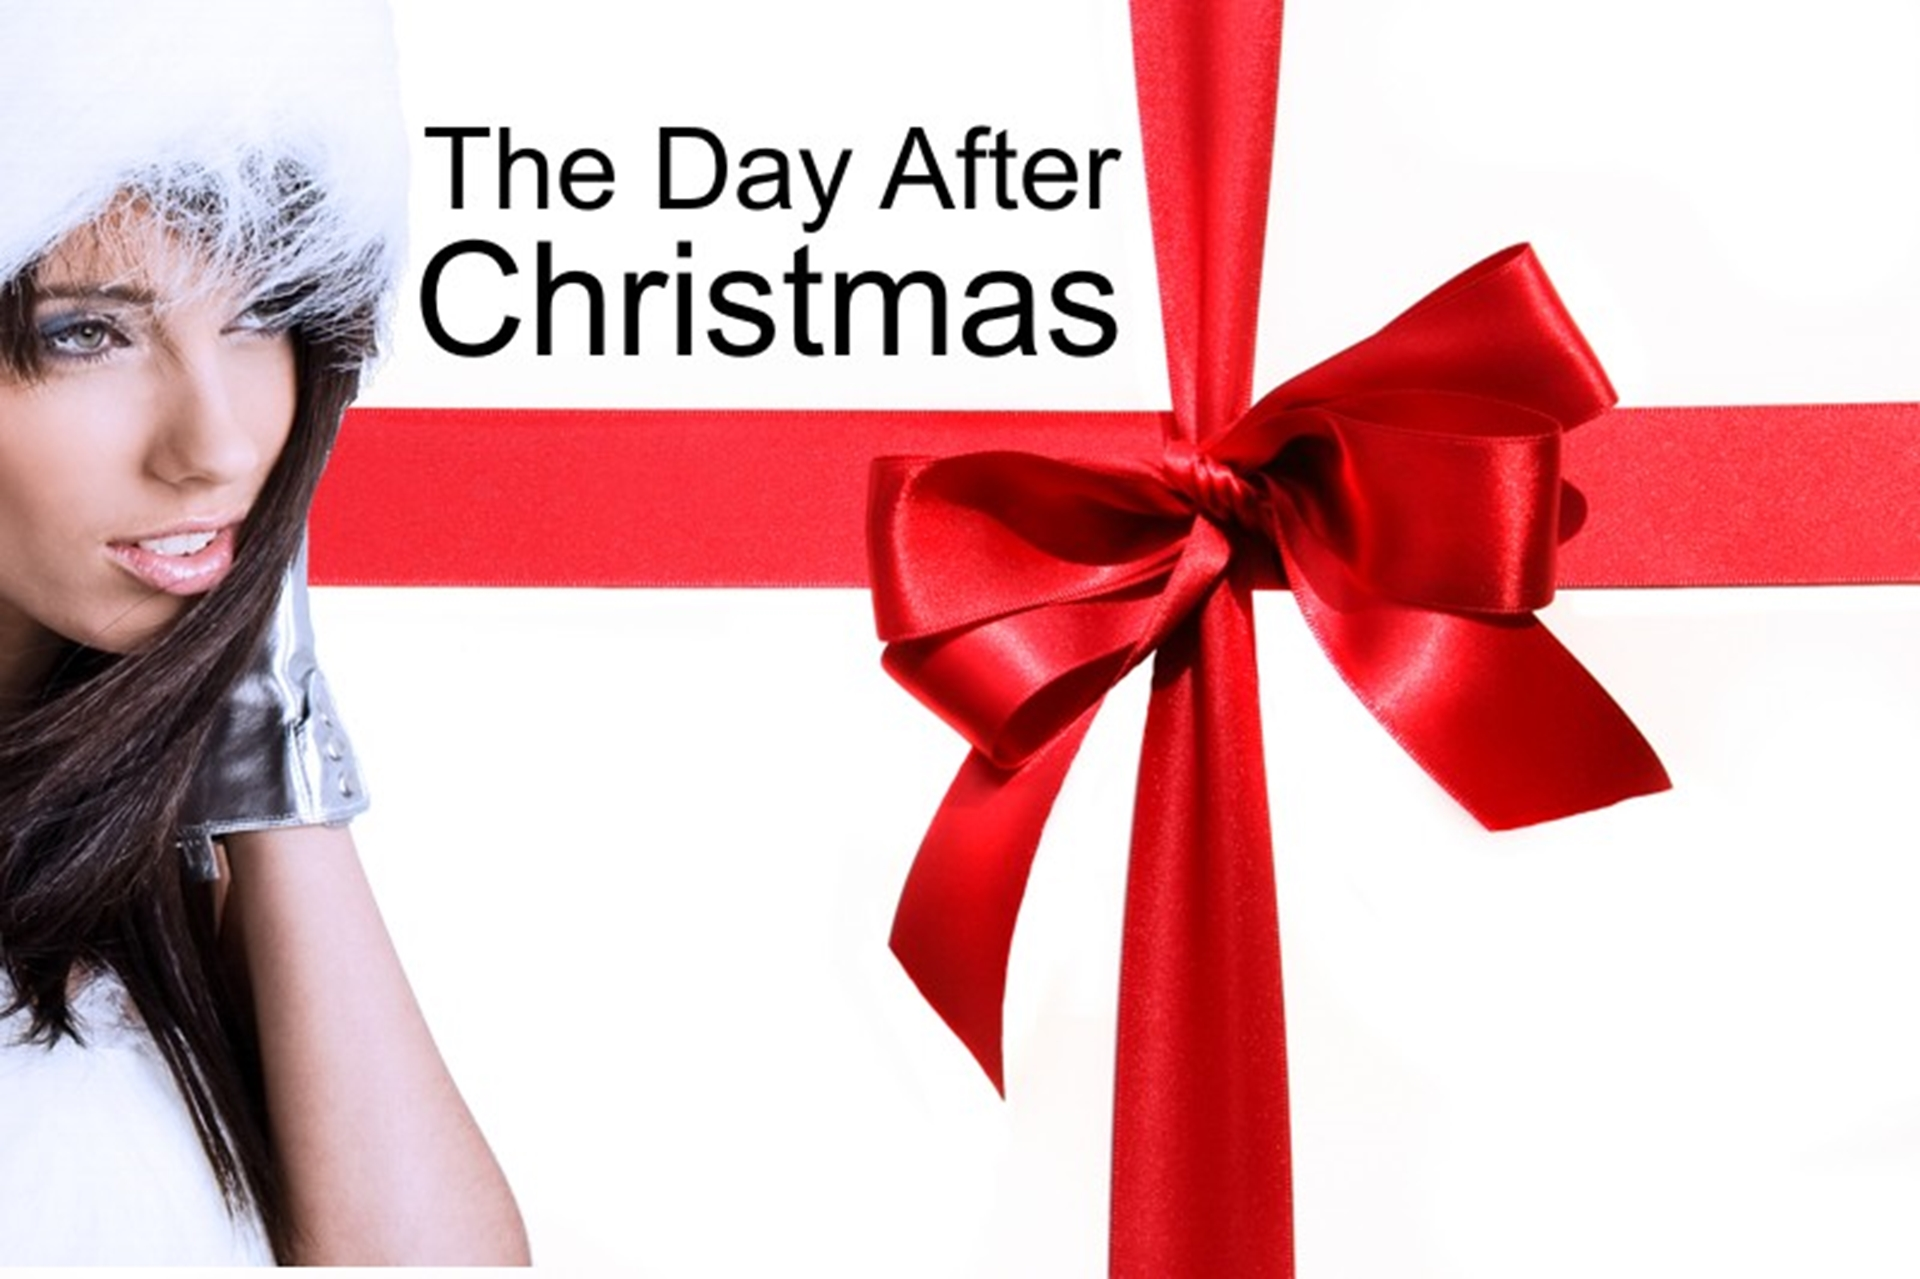 the day after christmas cyber monday or boxing day - What Is The Day After Christmas Called